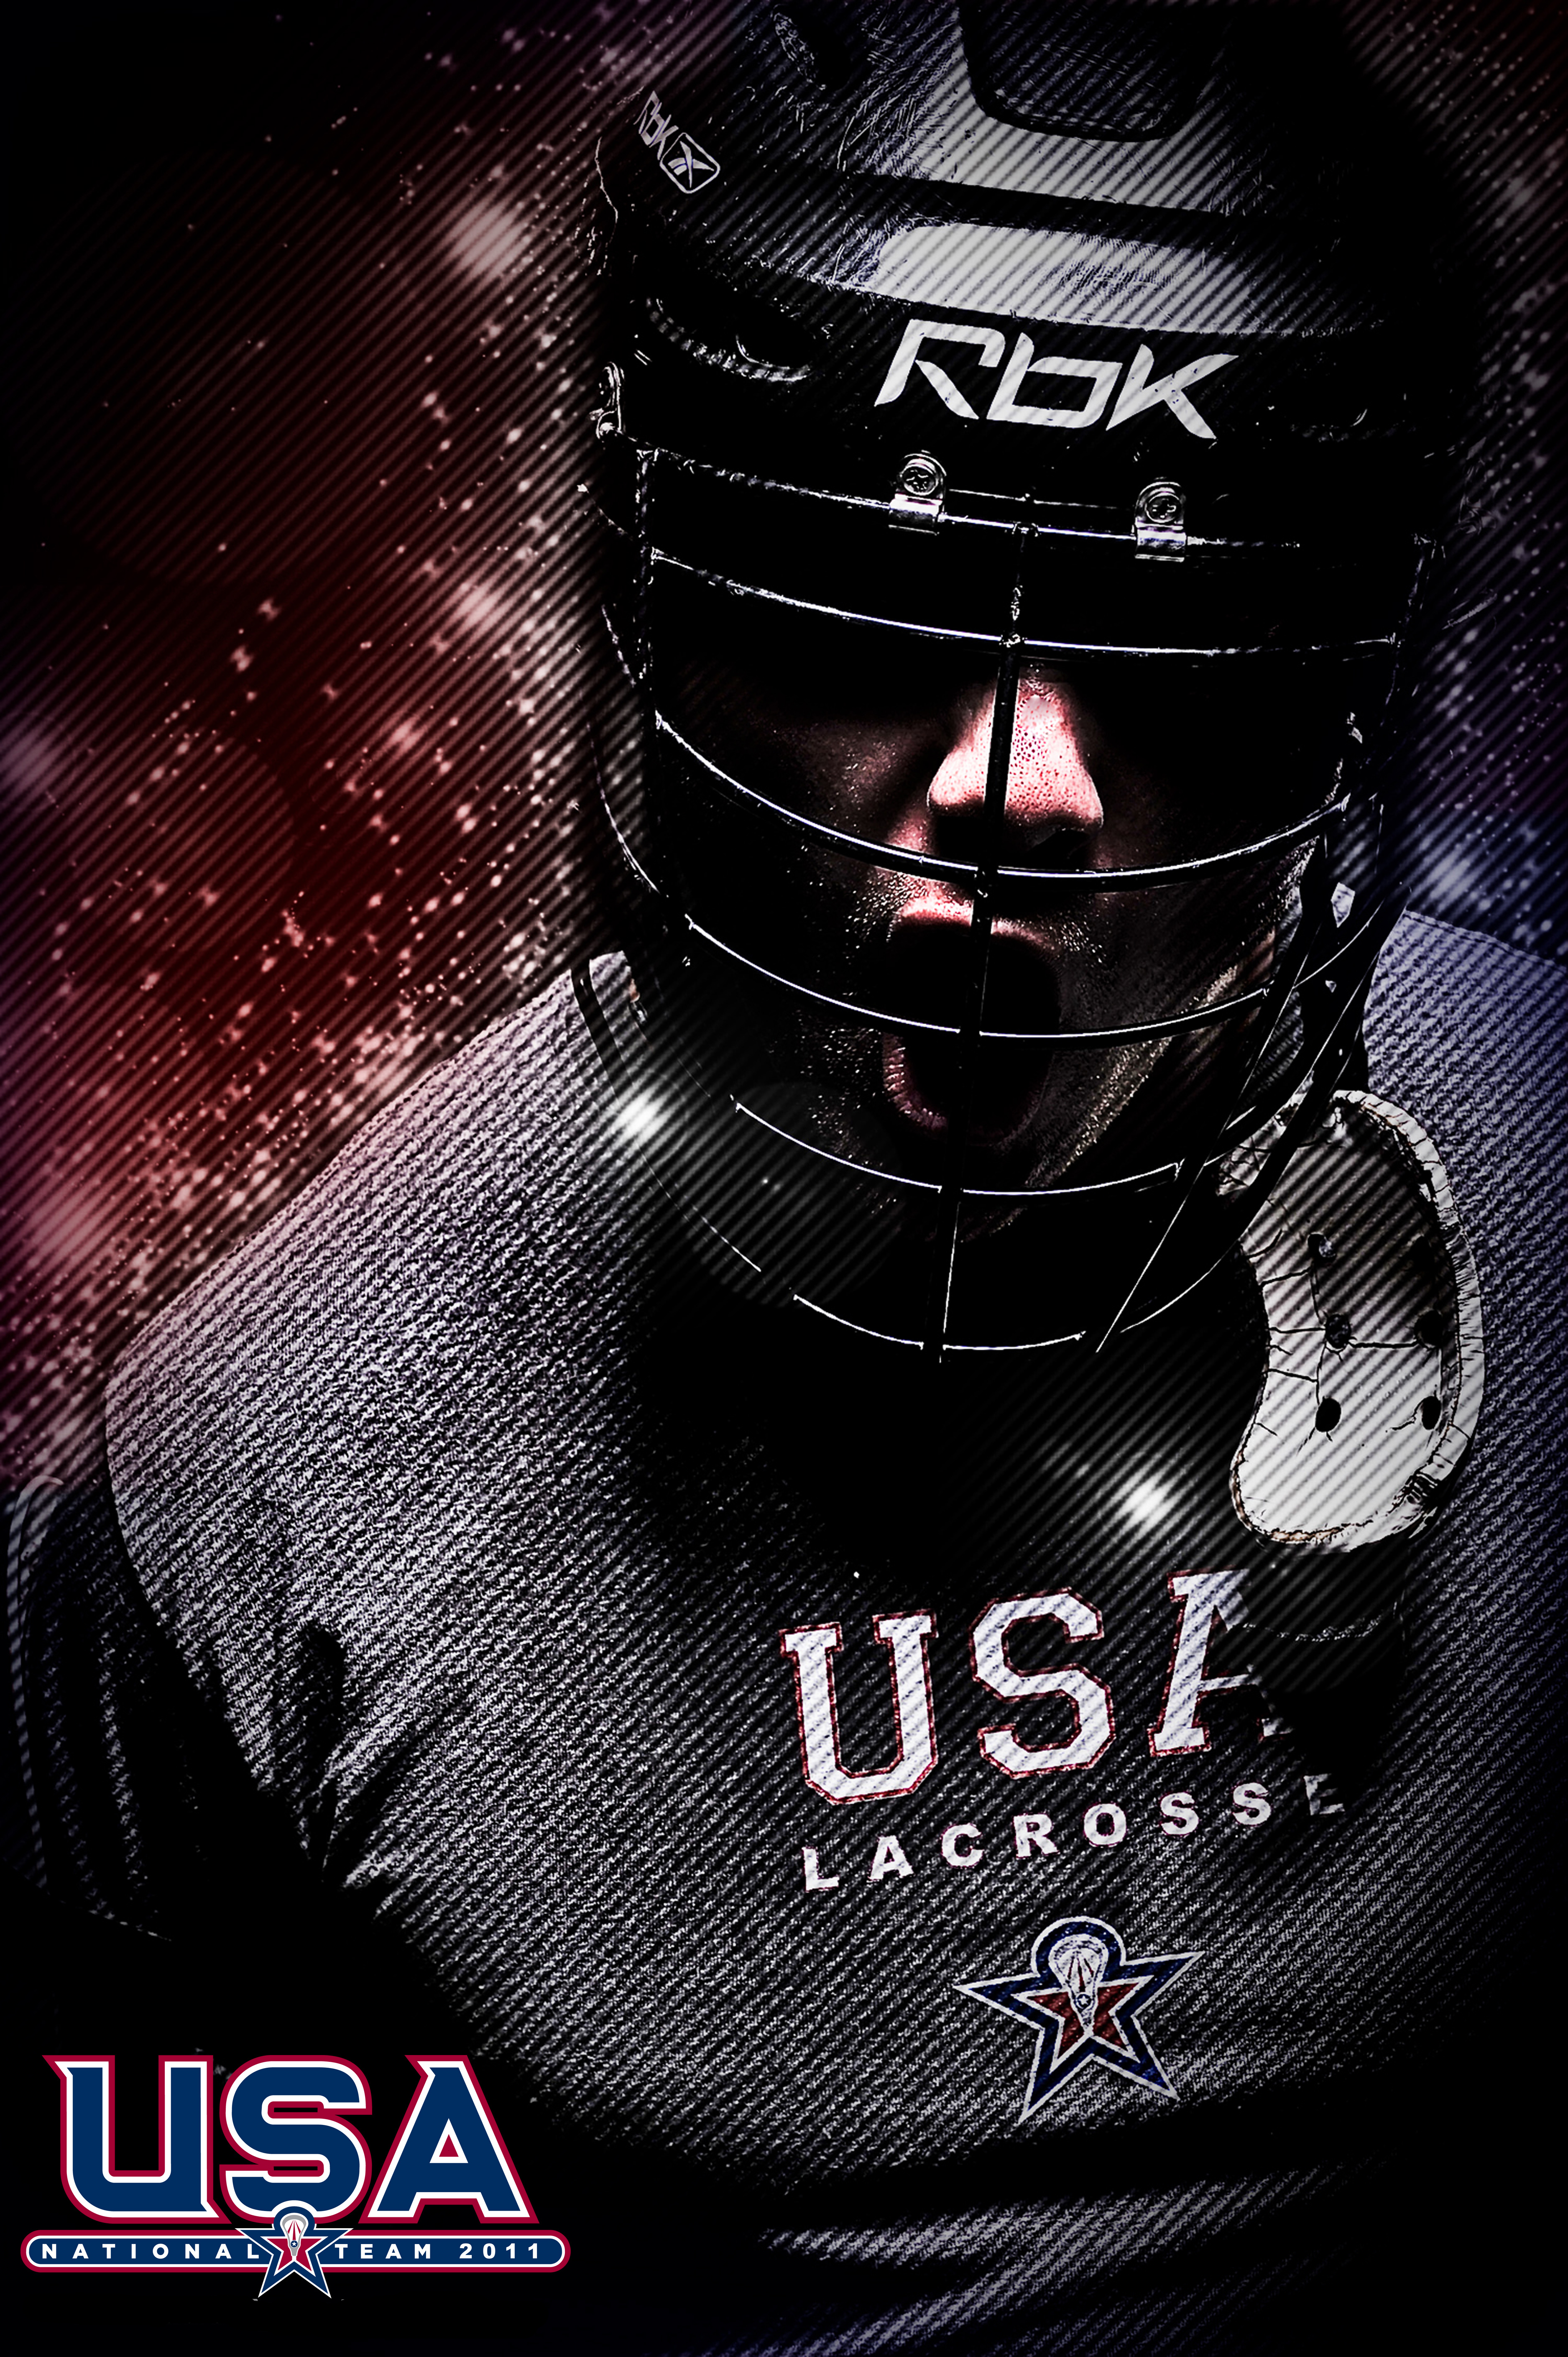 LACROSSE LAX NIKE TEAM USA  COMMERCIAL ADVERTISING PHOTOGRAPHY - VERDICT DIGITAL LOS ANGELES SAN FRANCISCO OAKLAND